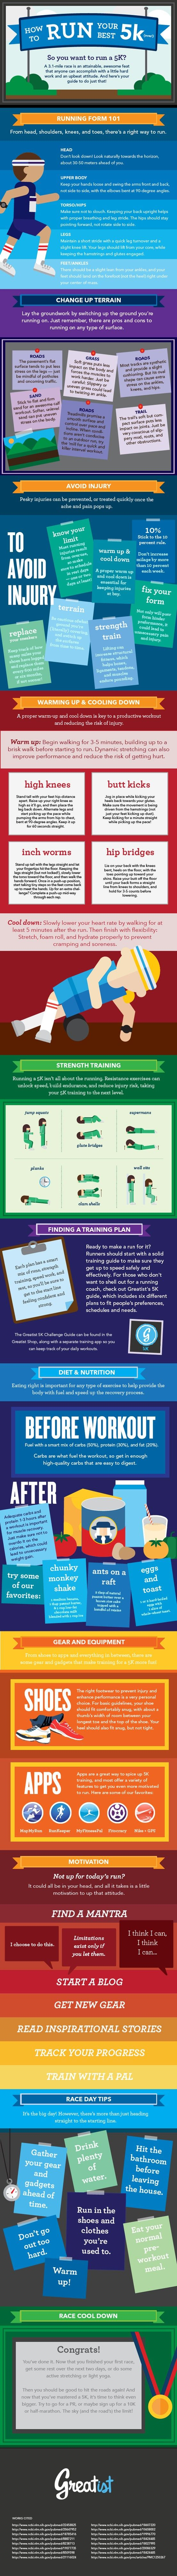 http://greatist.com/fitness/how-run-your-best-5k-ever-infographic